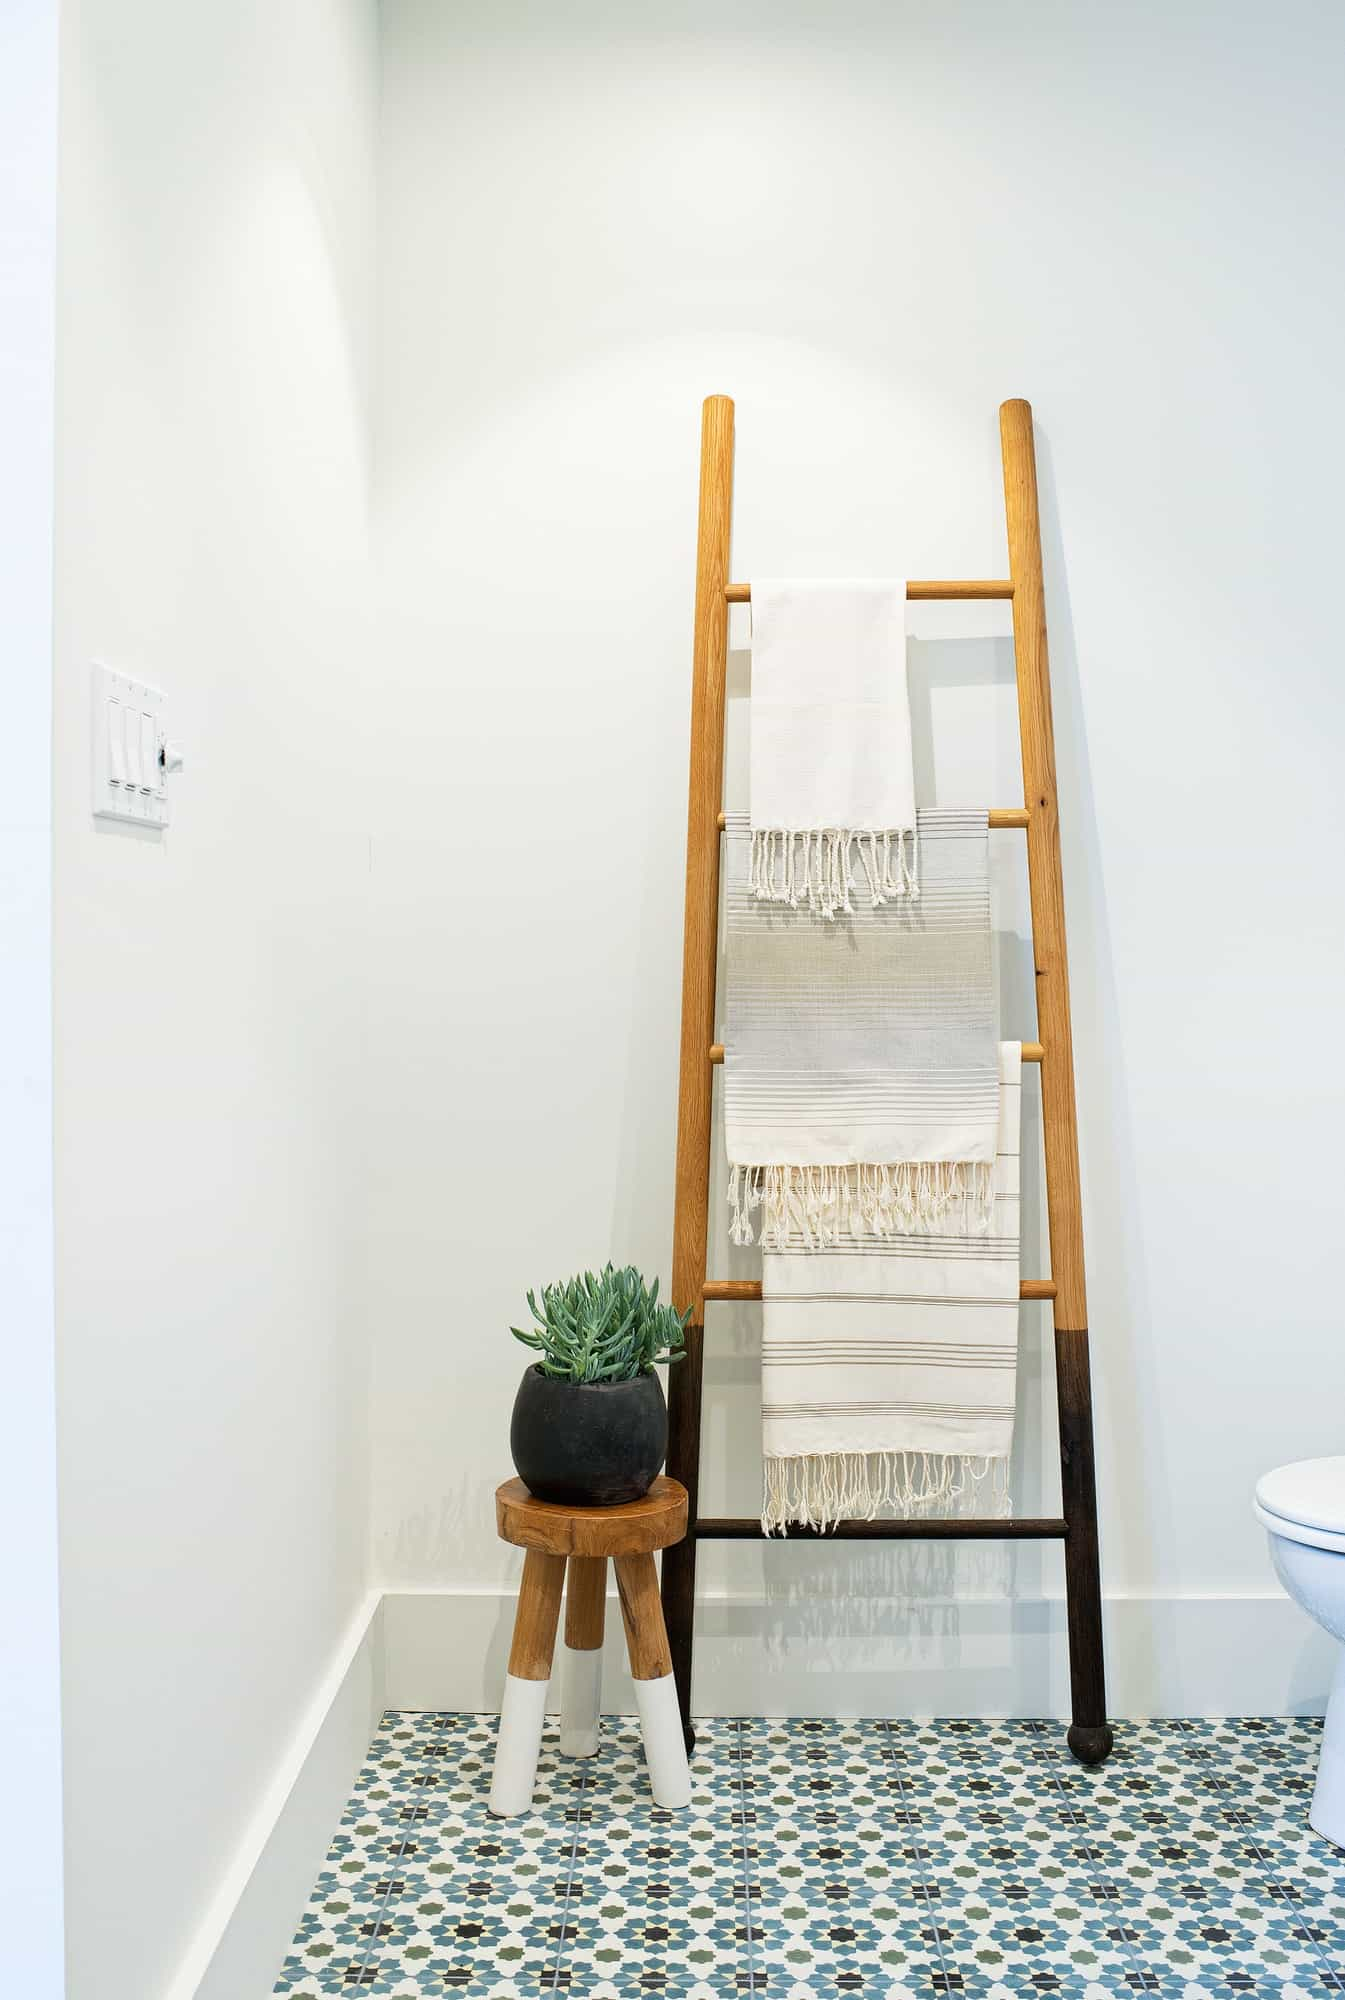 The Benefits Of Having A Good Towel Racks In Your Bathroom